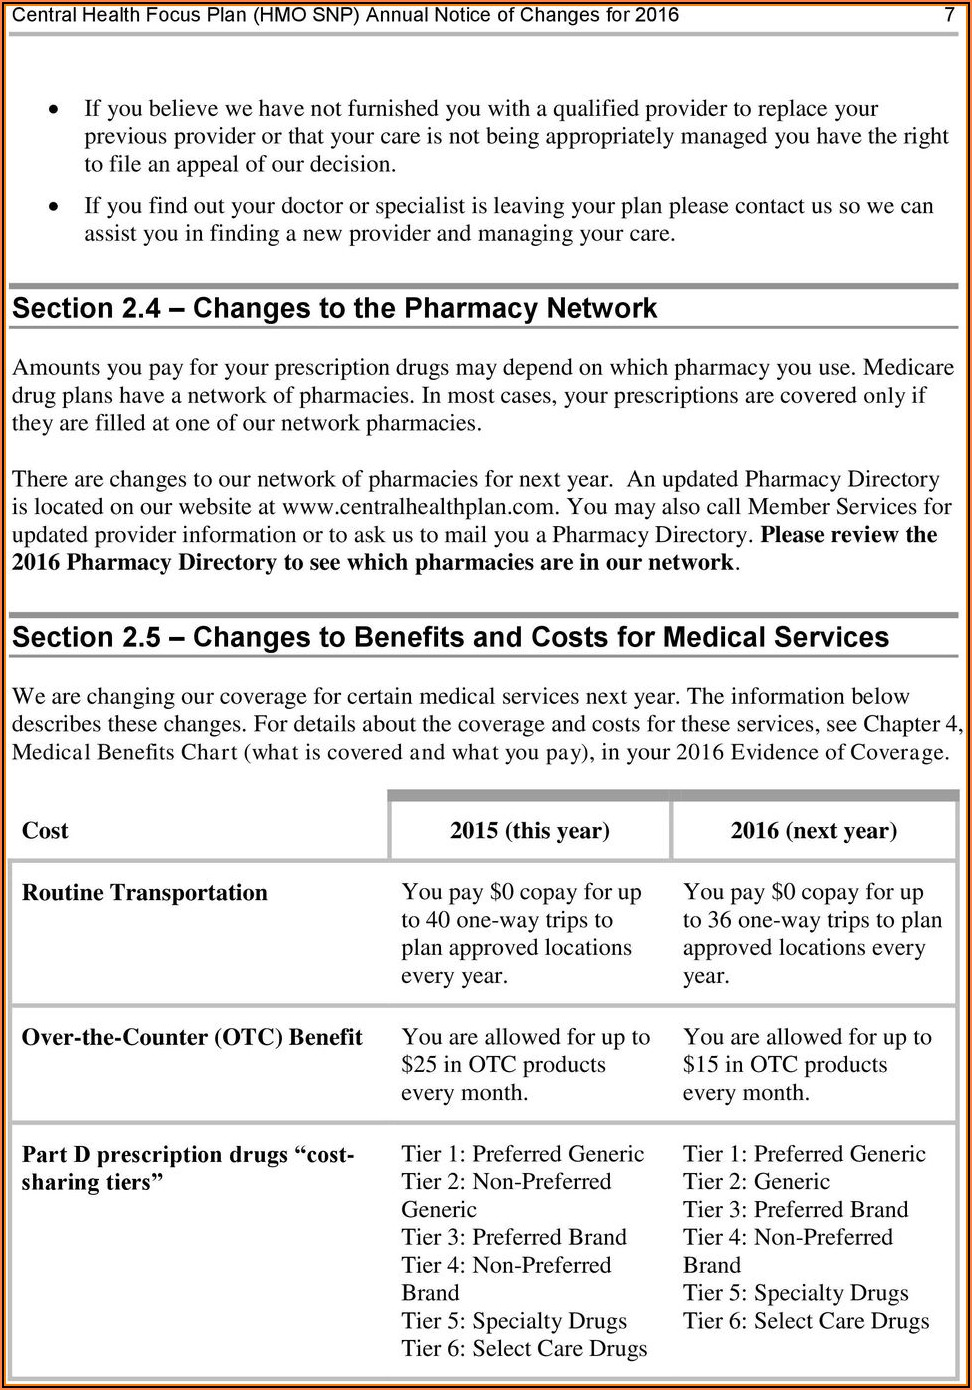 Central Health Medicare Plan Otc Order Form